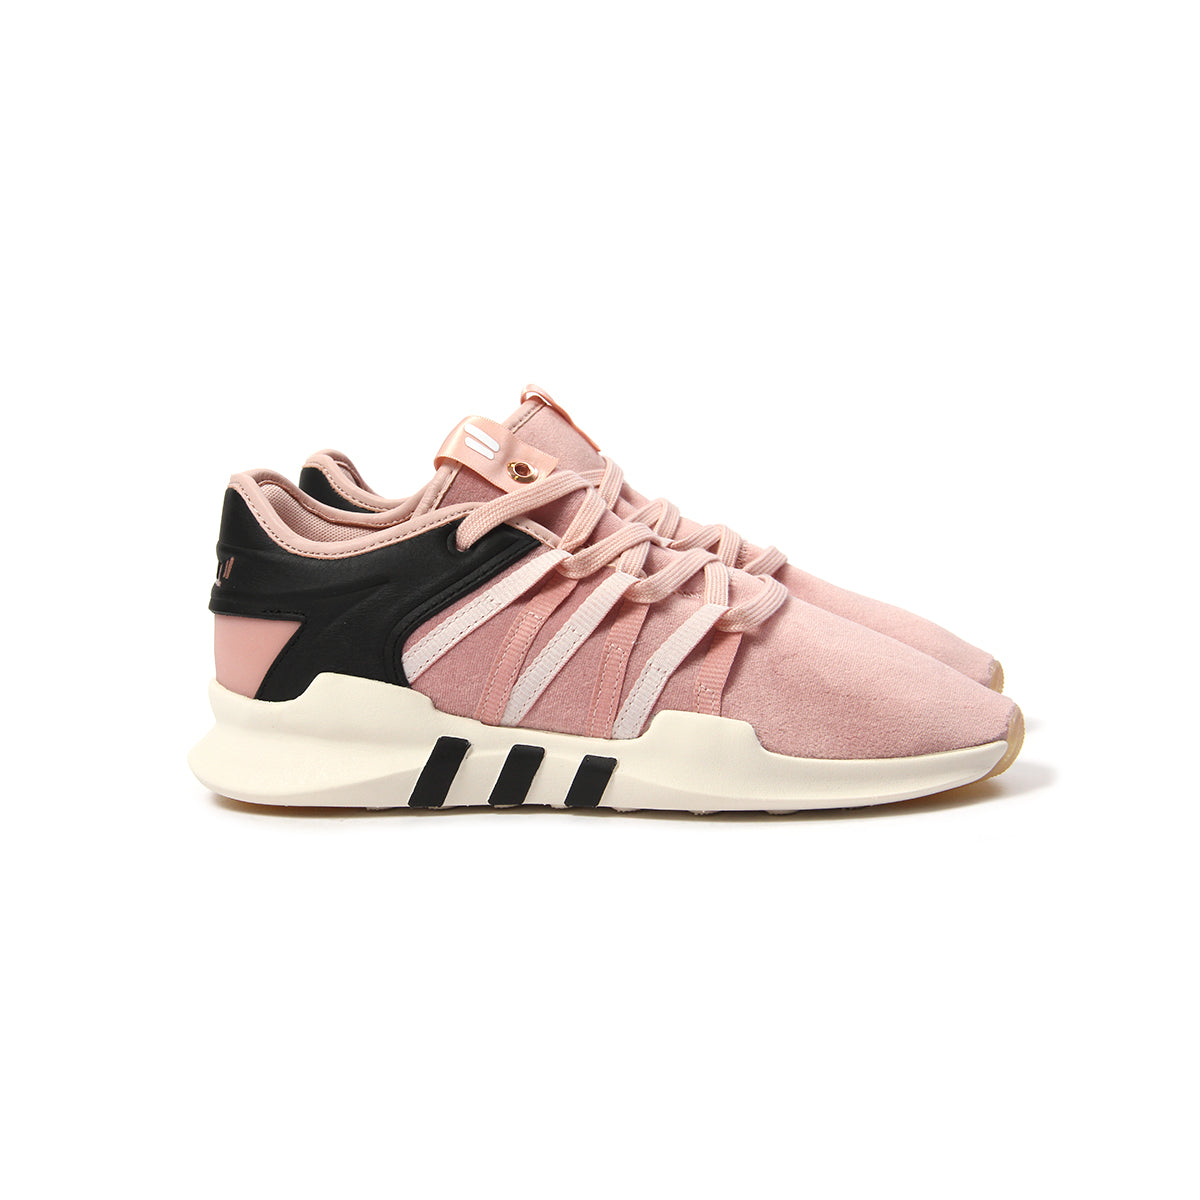 on sale a76a2 c6d2d ... support adv vapor pink grey black 429c3 ebc1f  where to buy adidas  womens eqt lacing adv s.e vapor pink ice pink 4921c 9eccd